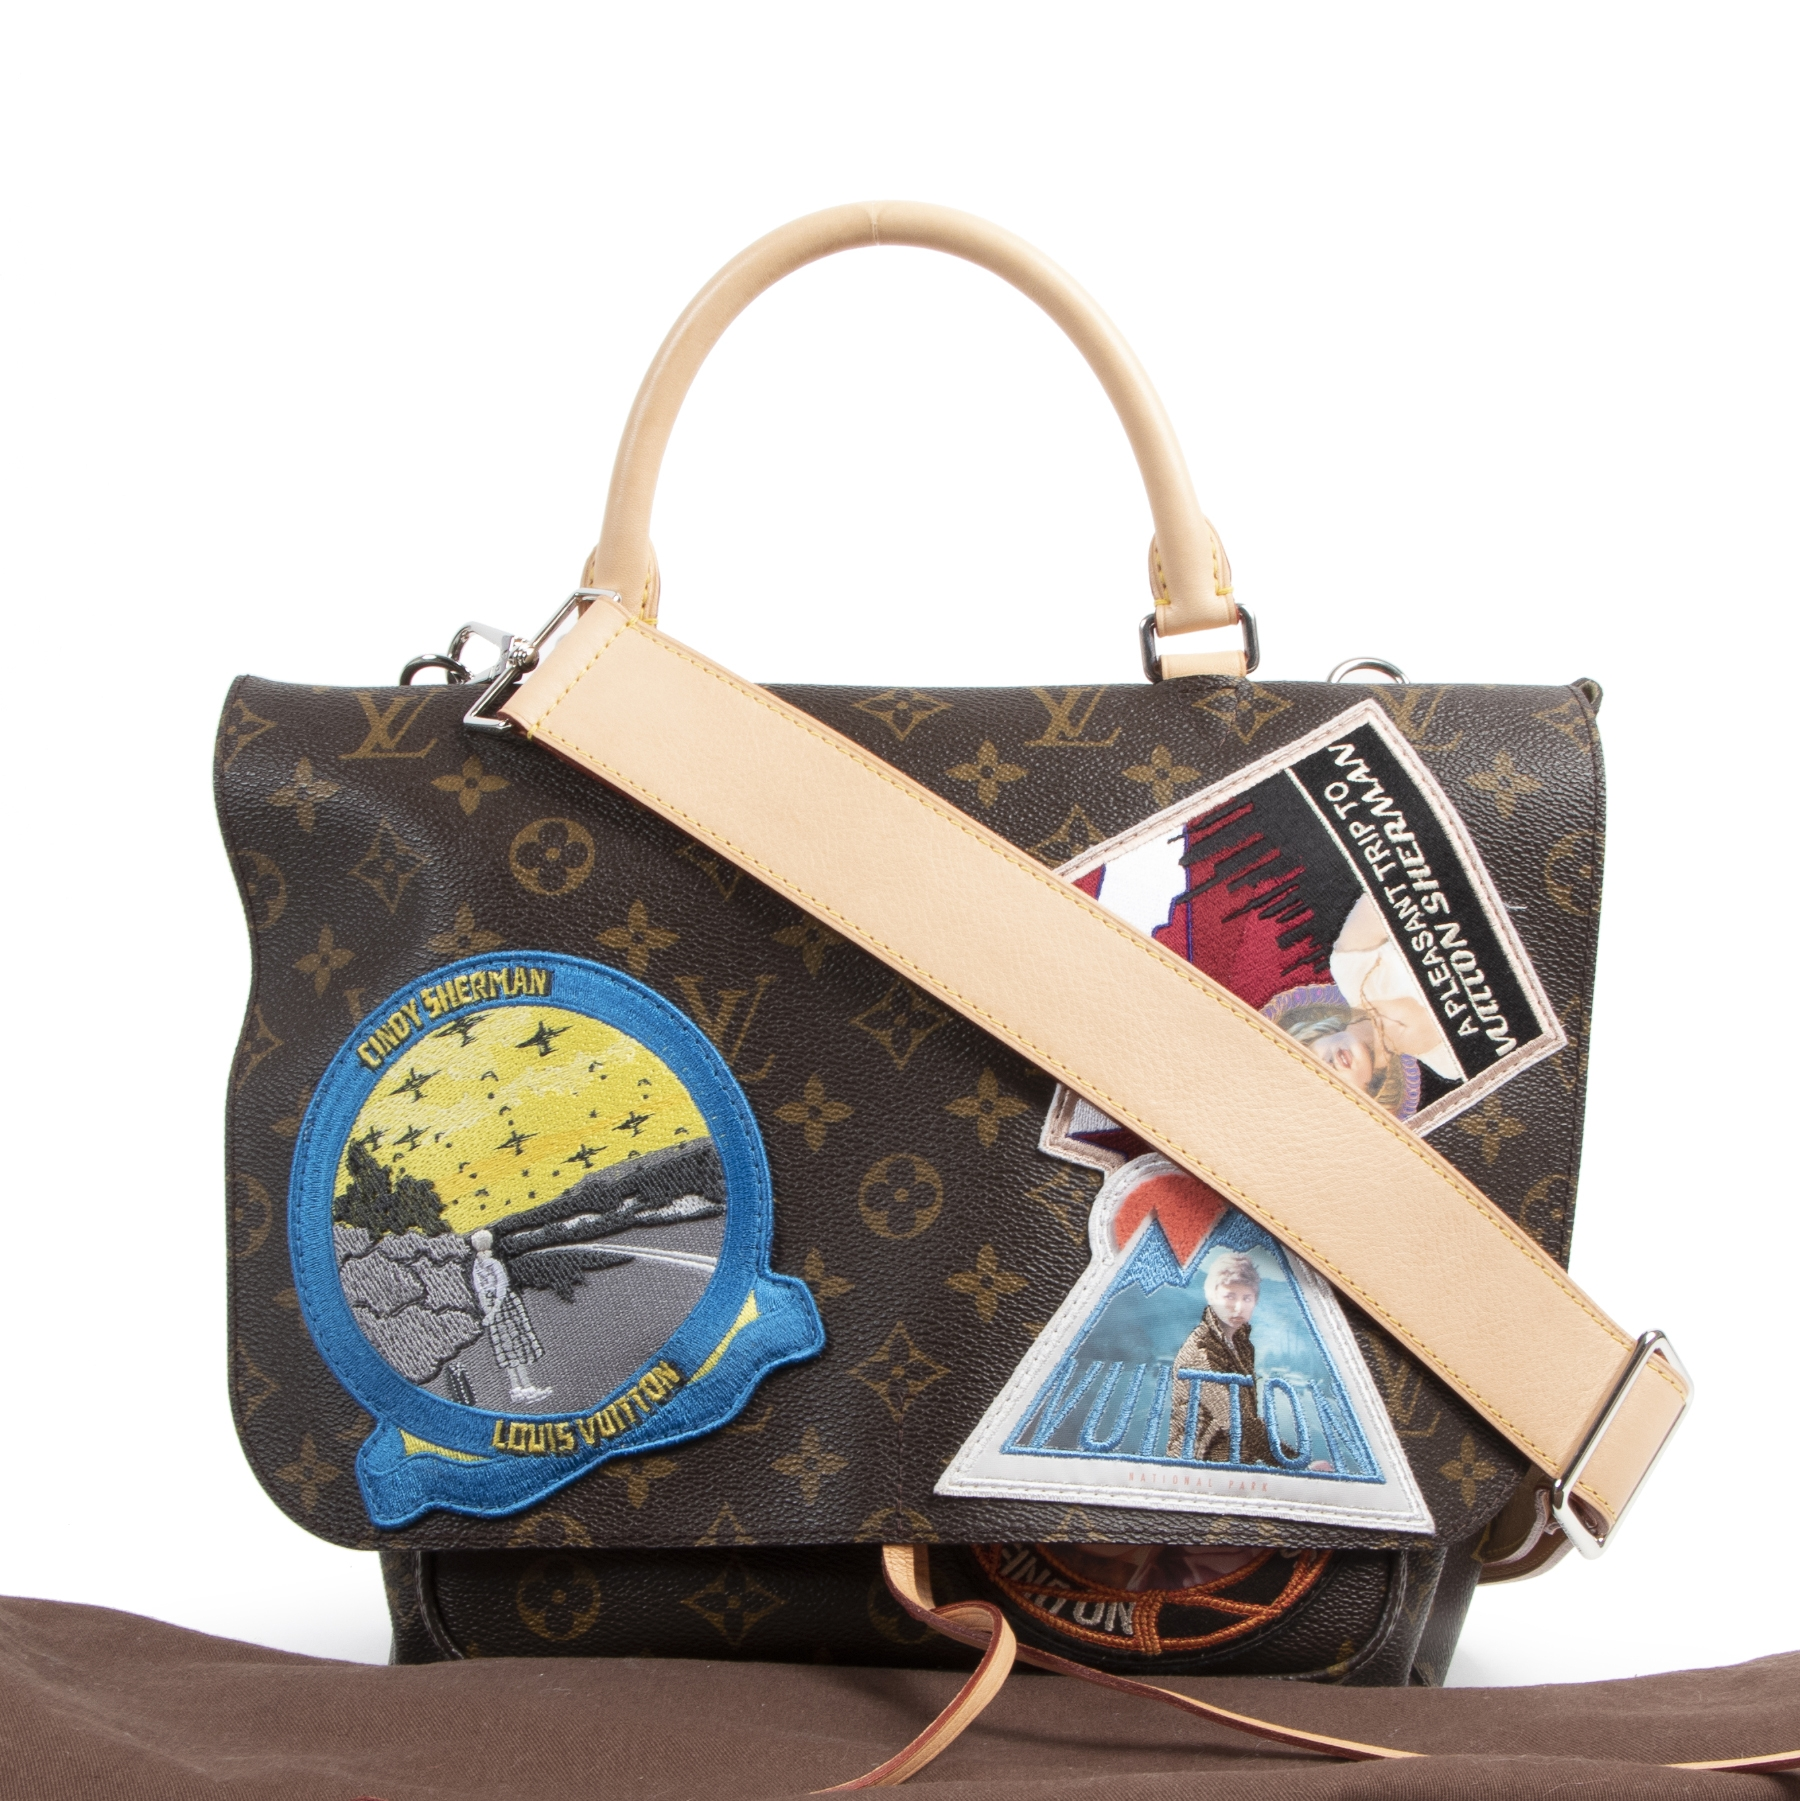 Louis Vuitton Limited Edition Cindy Sherman Messenger Bag